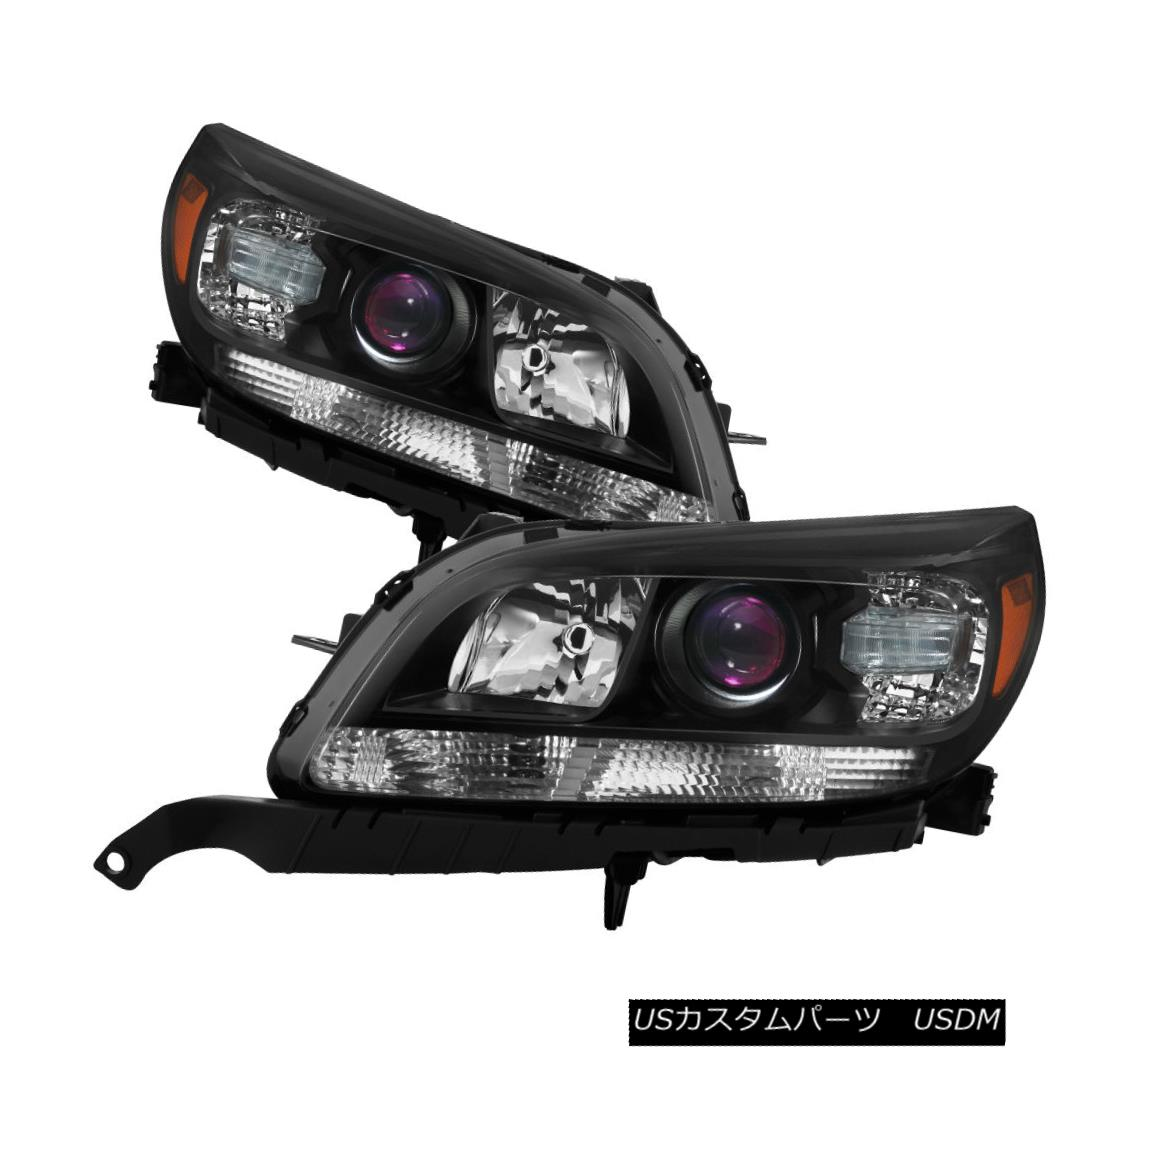 ヘッドライト Chevy 13-15 Malibu LT / LTZ Black Housing Replacement Headlights Left + Right Chevy 13-15 Malibu LT / LTZブラックハウジング交換ヘッドライト左+右